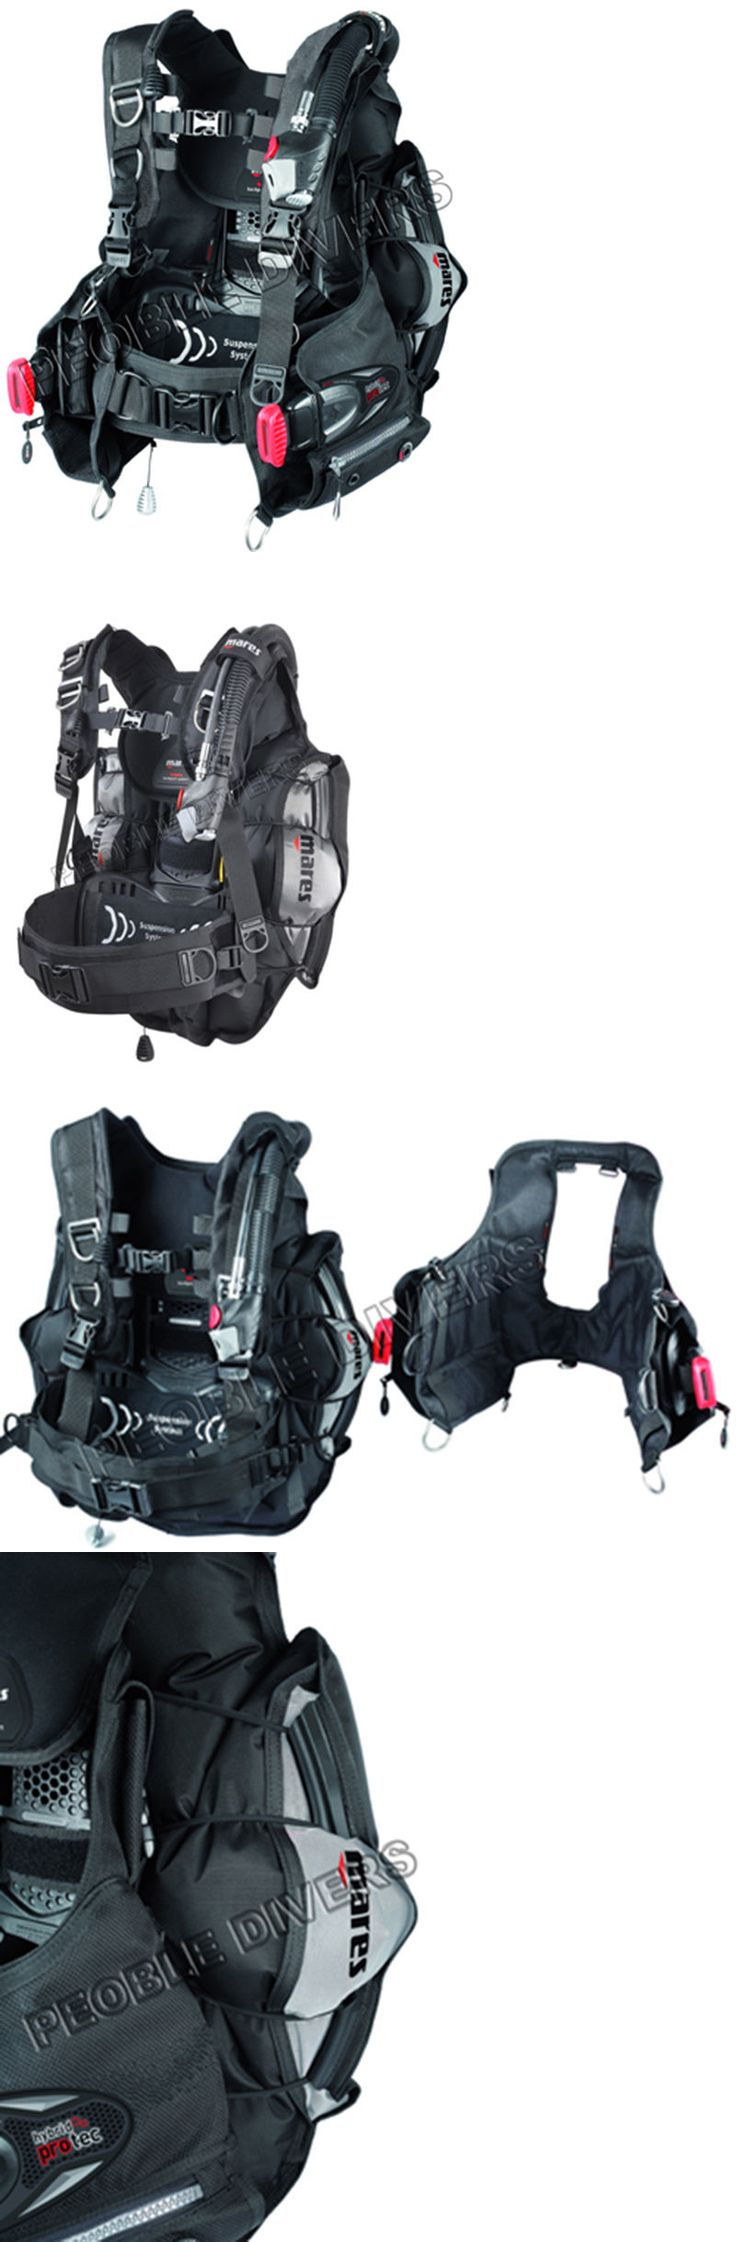 Buoyancy Compensators 16053: Mares Hybrid Pro Tec Bcd With Mrs+Pockets New W/Warranty Size Xl Priced For Sale BUY IT NOW ONLY: $425.0